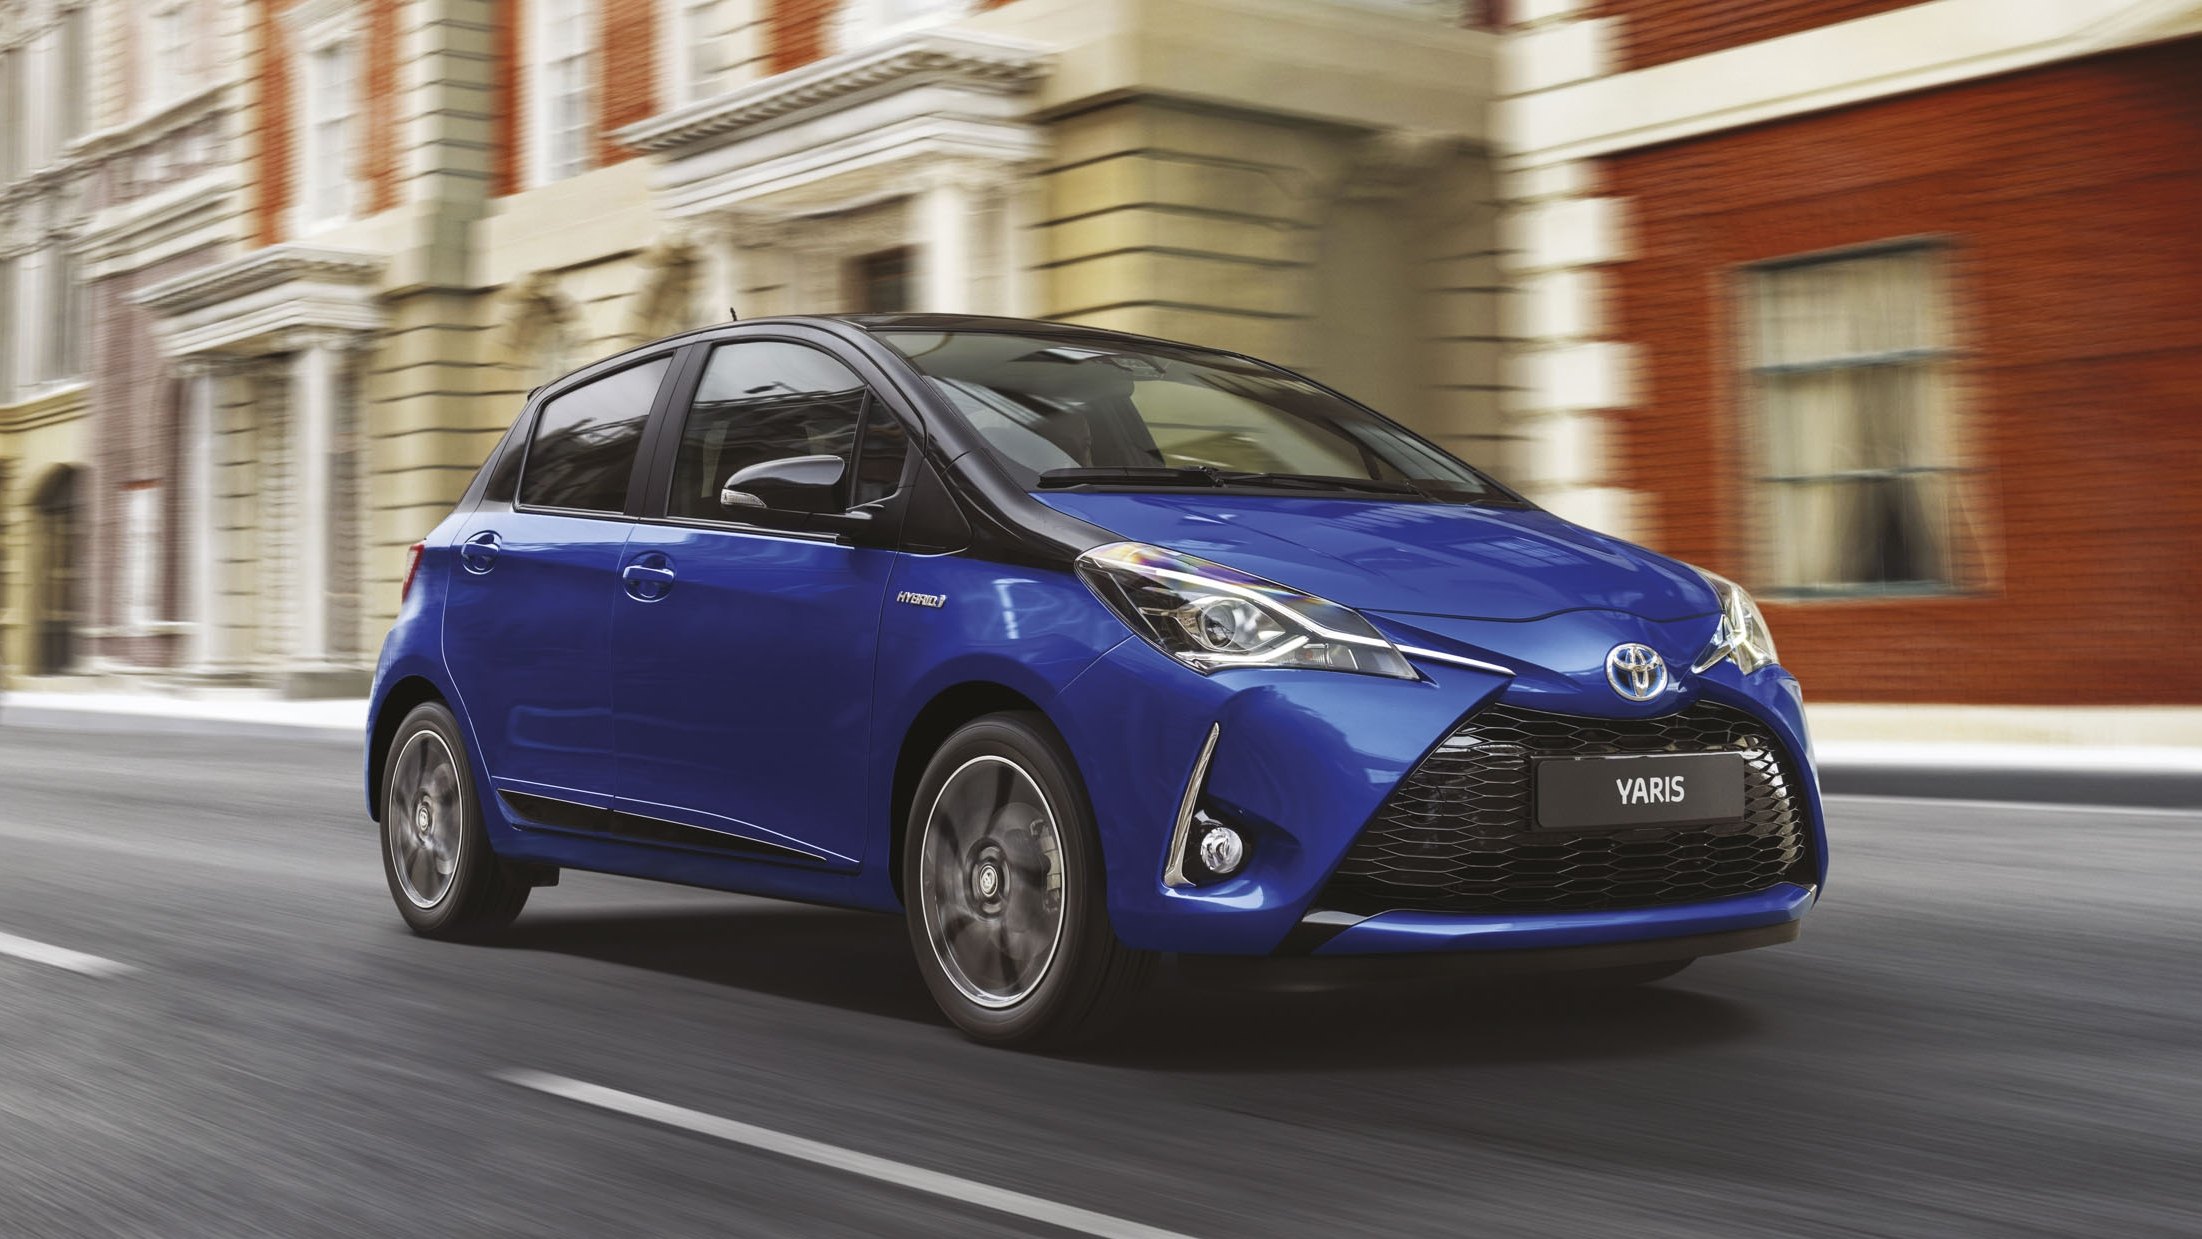 2017 toyota yaris review gallery top speed. Black Bedroom Furniture Sets. Home Design Ideas